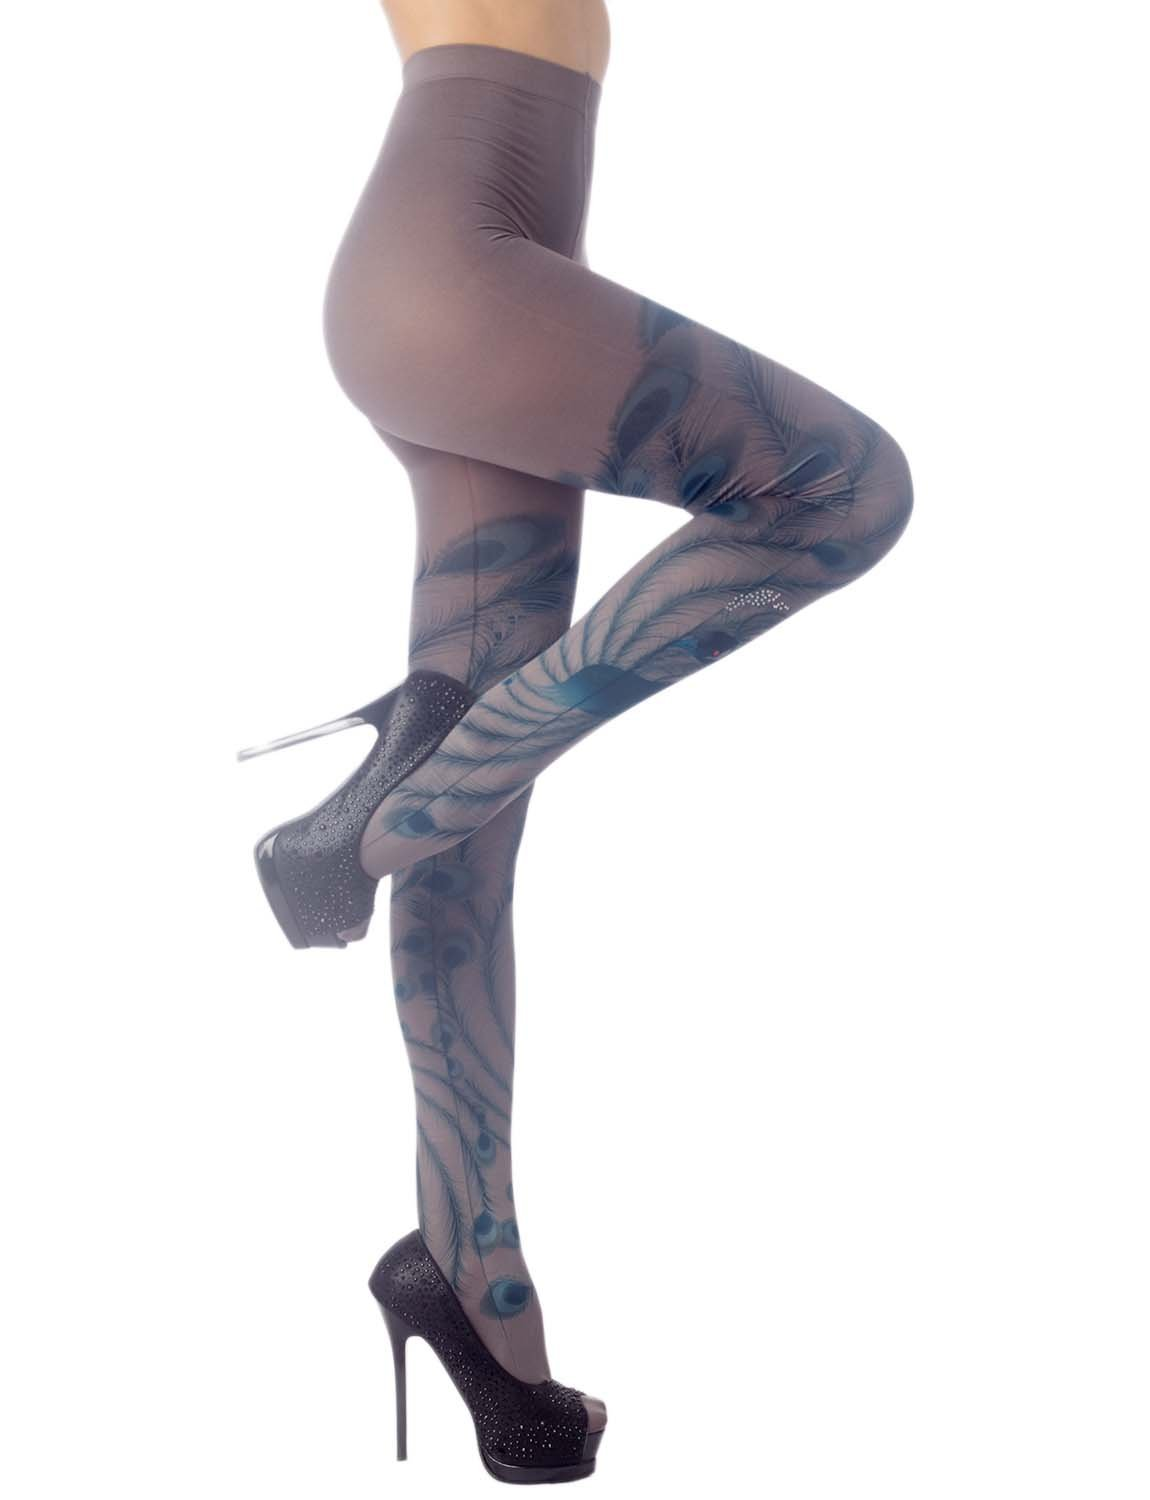 Women's Stocking Peacock Tail Print Charming Sheers Seam Tights Pantyhose, Size: One Size, Turquoise